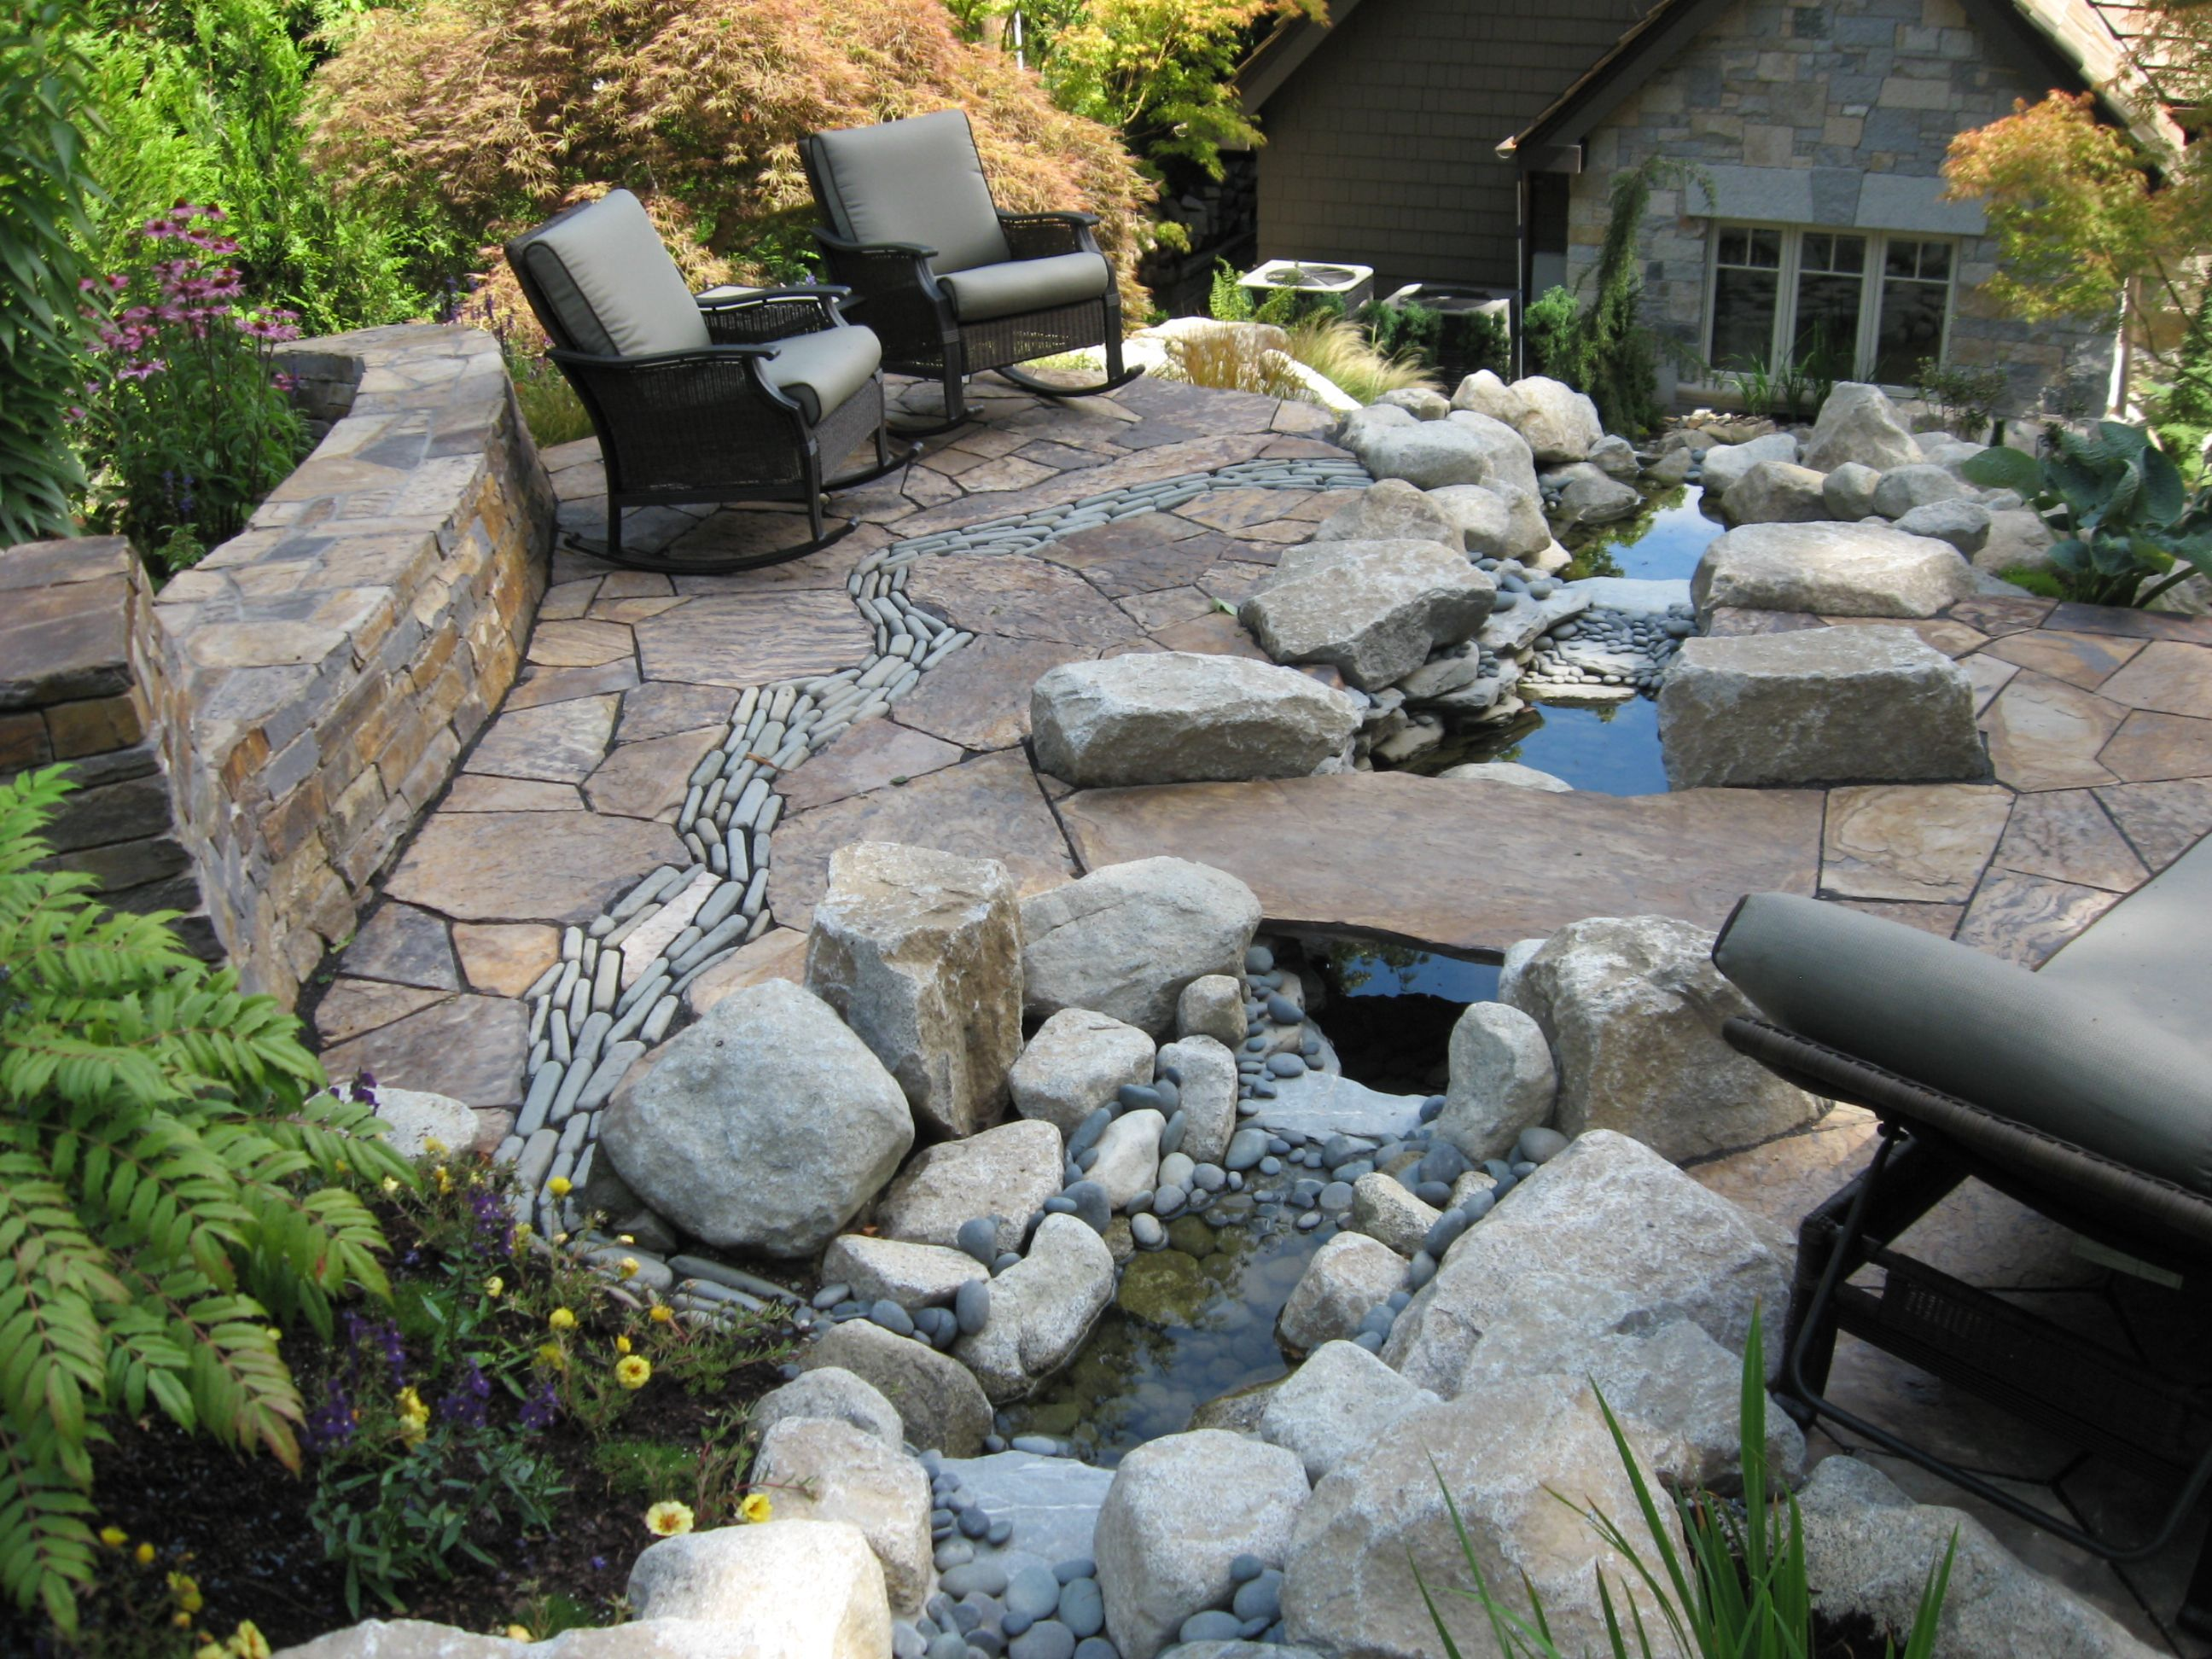 Stone Patio Ideas Backyard paver patio designs and ideas Youll Be Inspired With These Pictures Of Stone Patio Ideas Stone Patios Add Value To Your Home While Expanding Your Living Space Into The Backyard